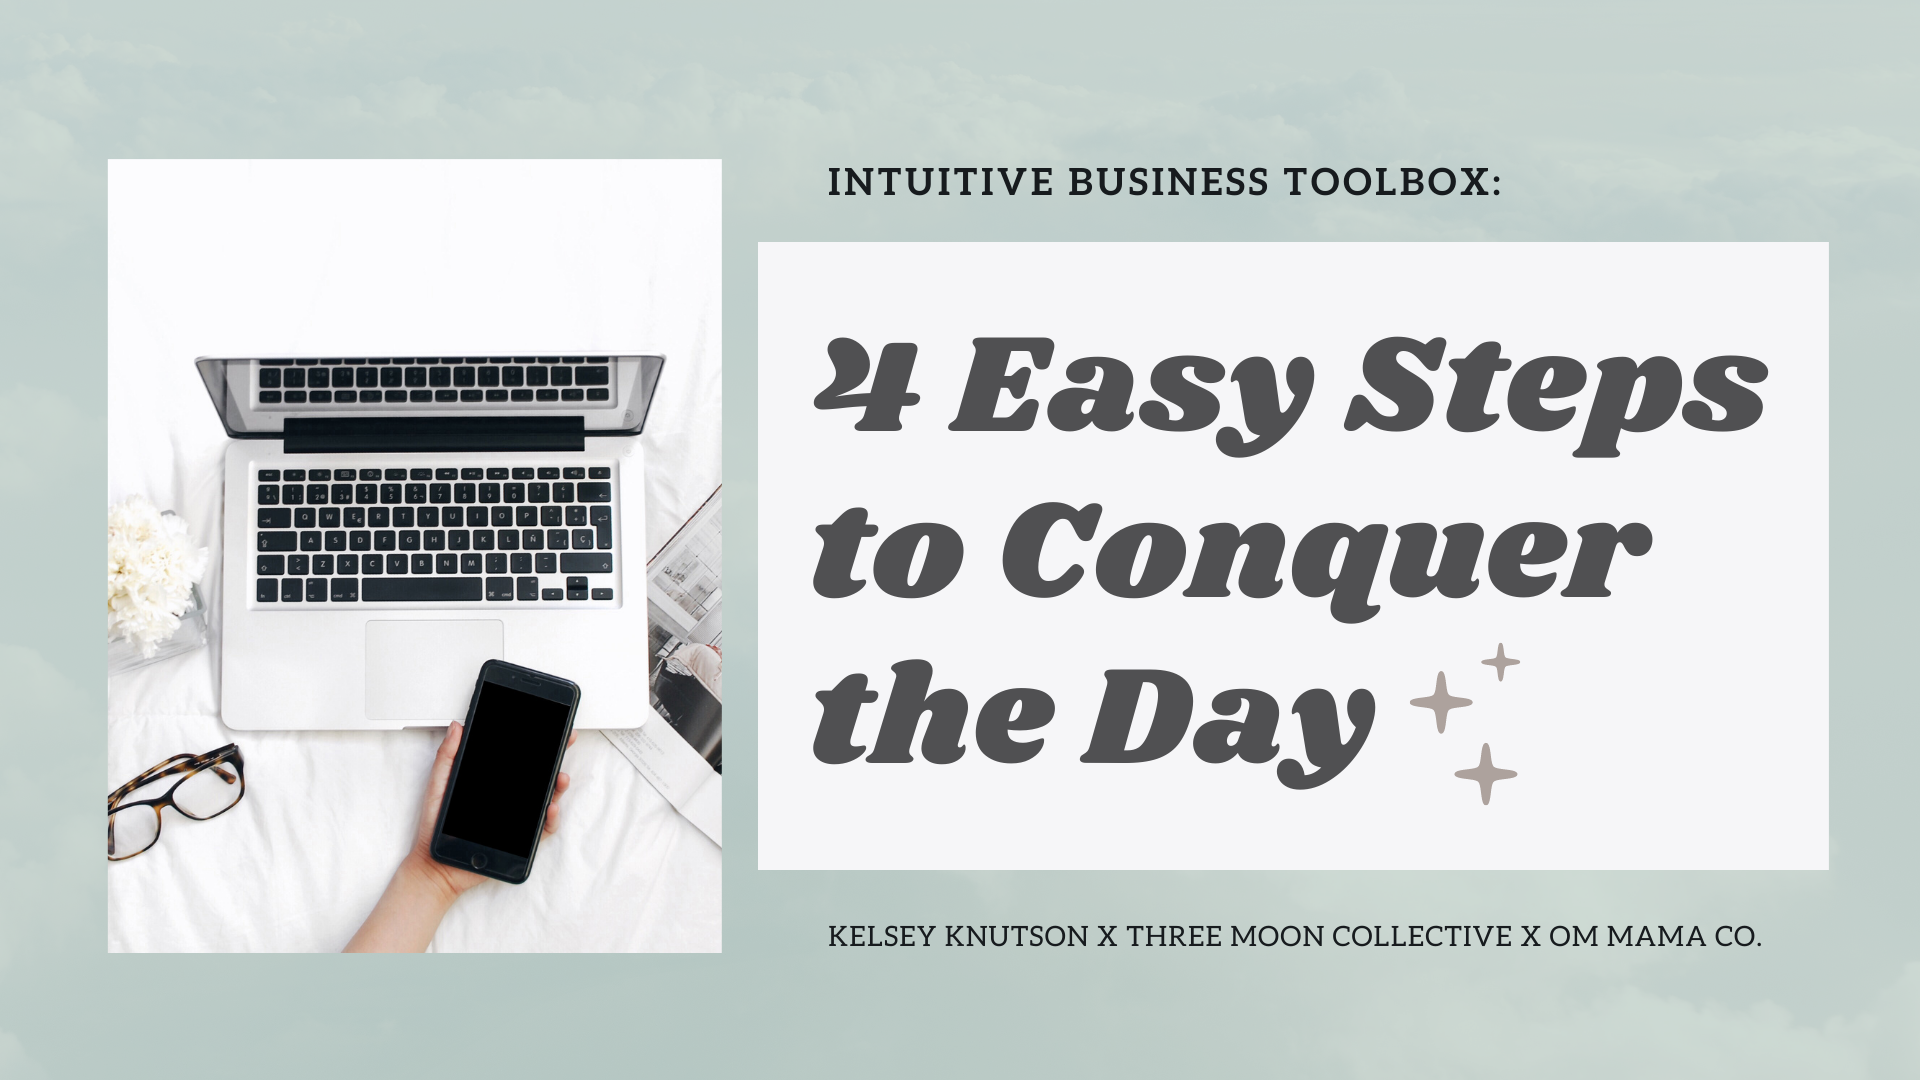 Intuitive Business Toolbox: 4 Easy Steps to Conquer the Day